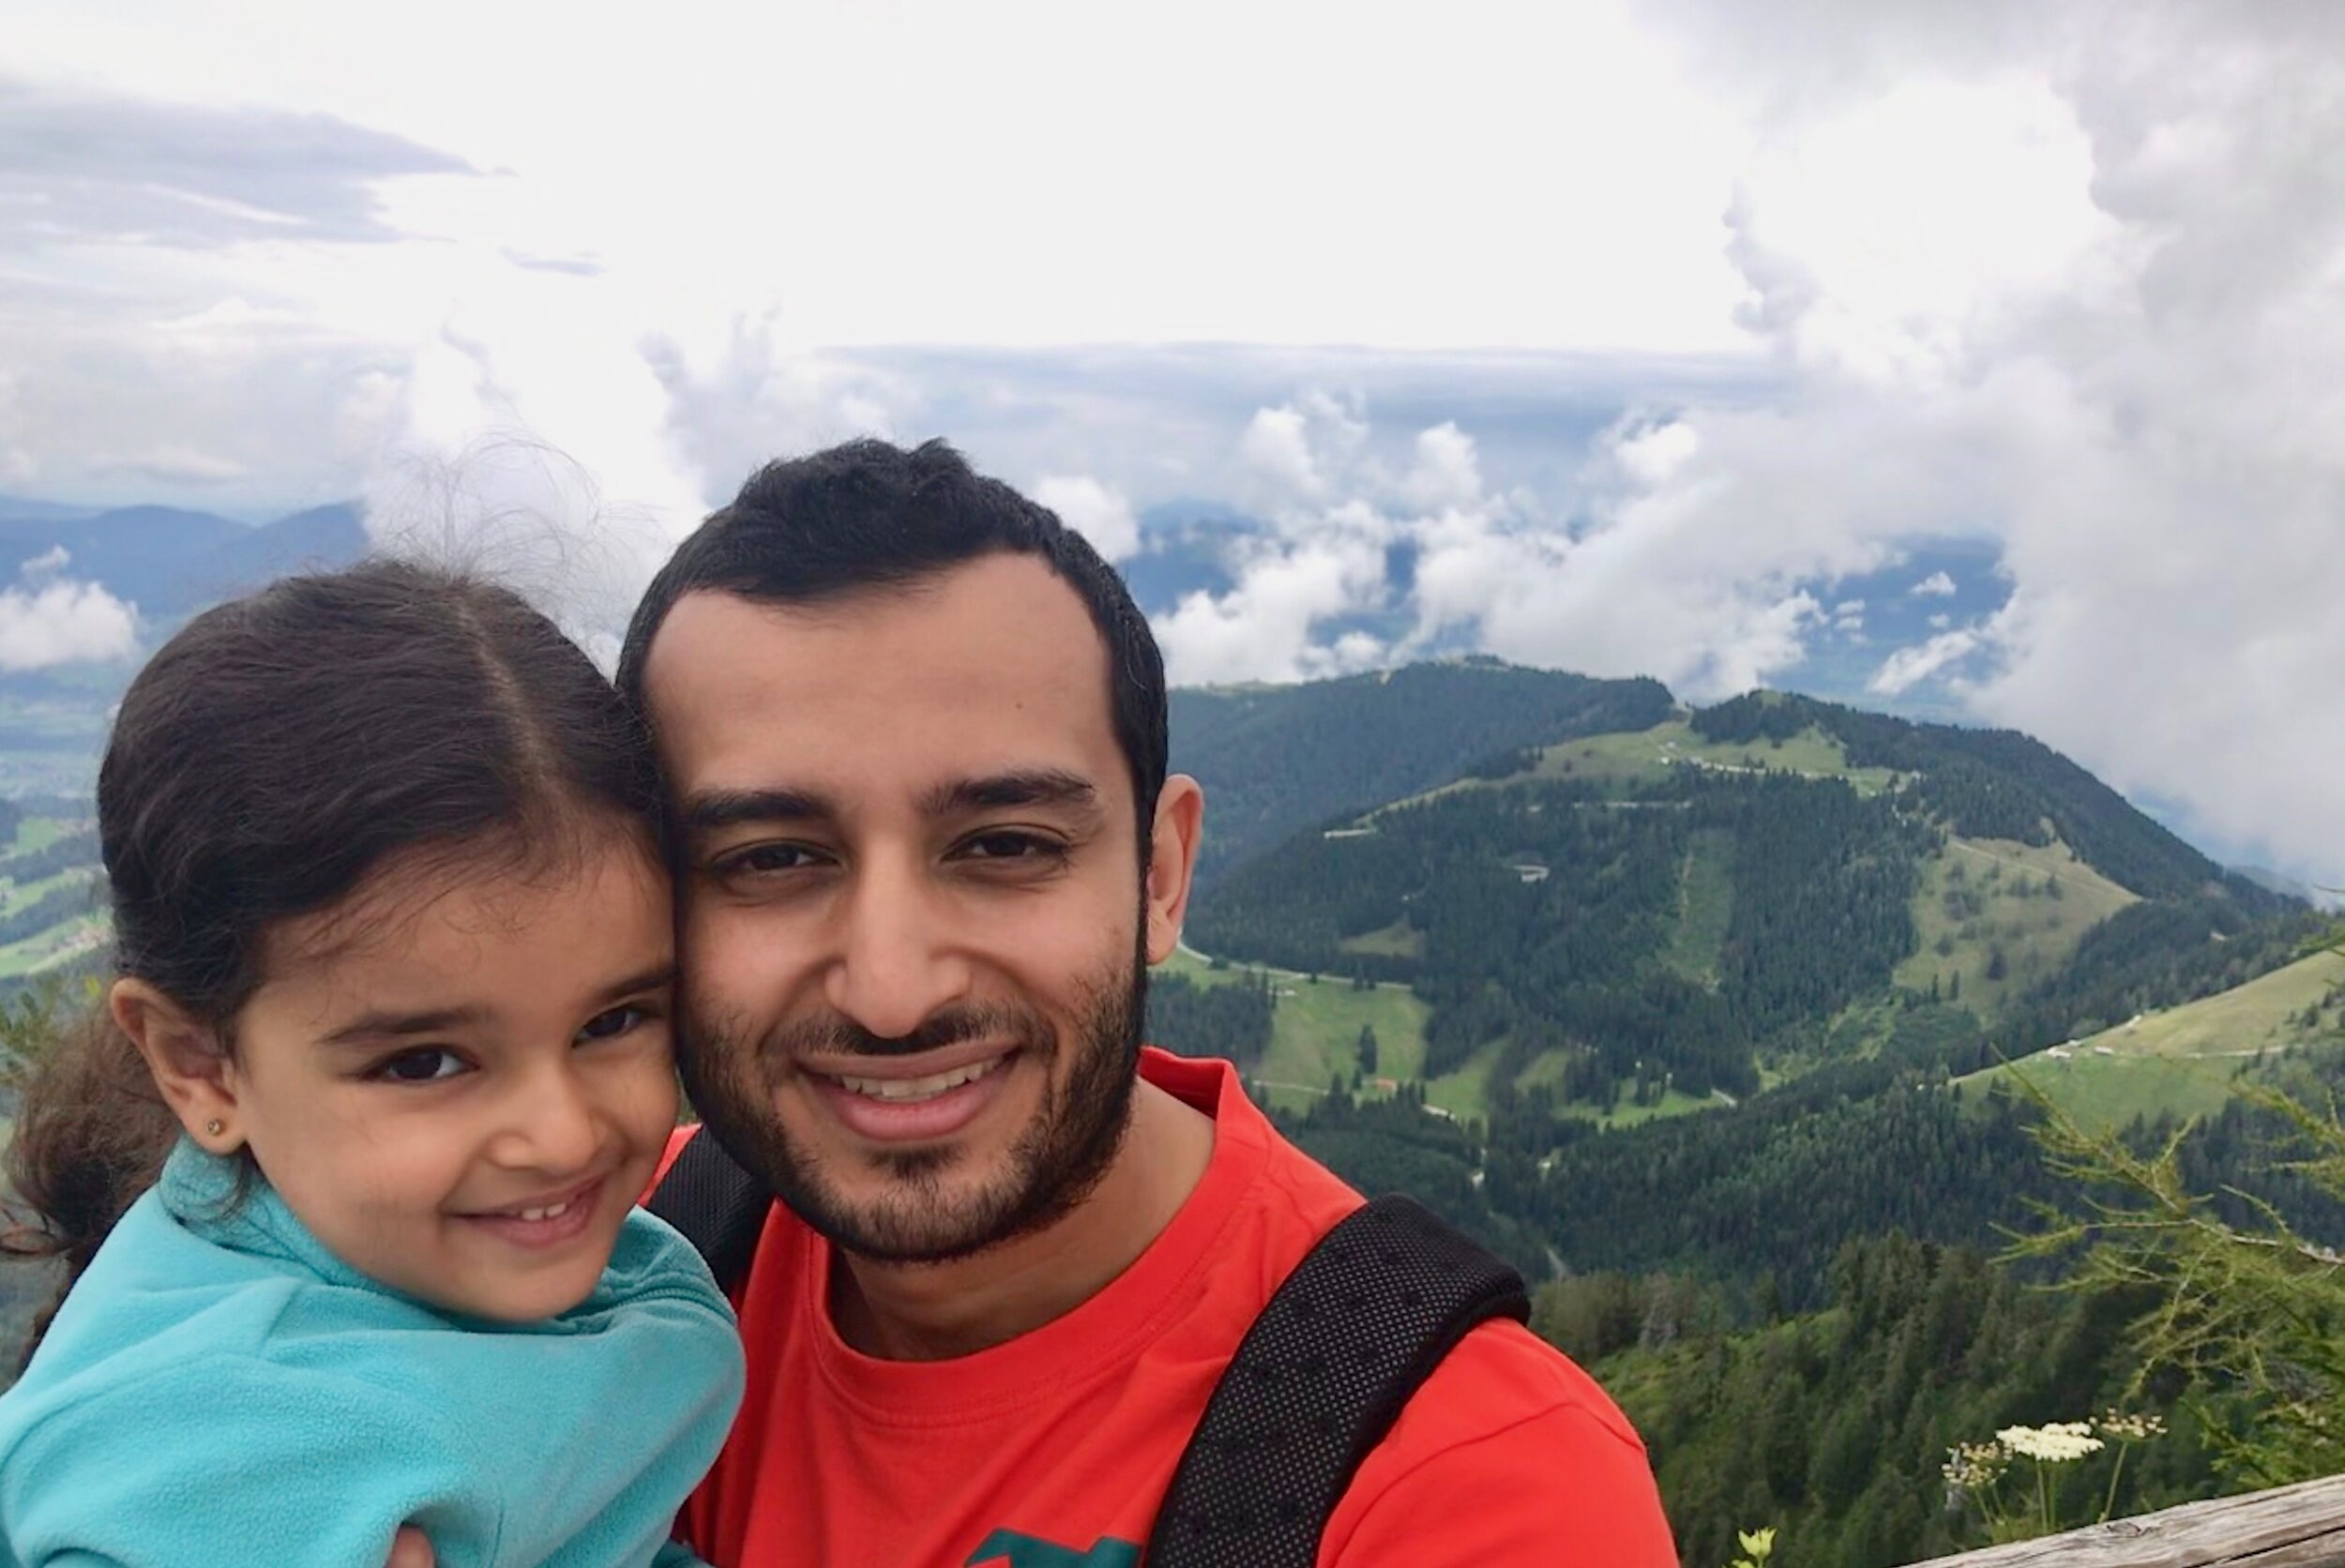 Ashraf and his daughter exploring Berchtesgaden National Park in the Alps